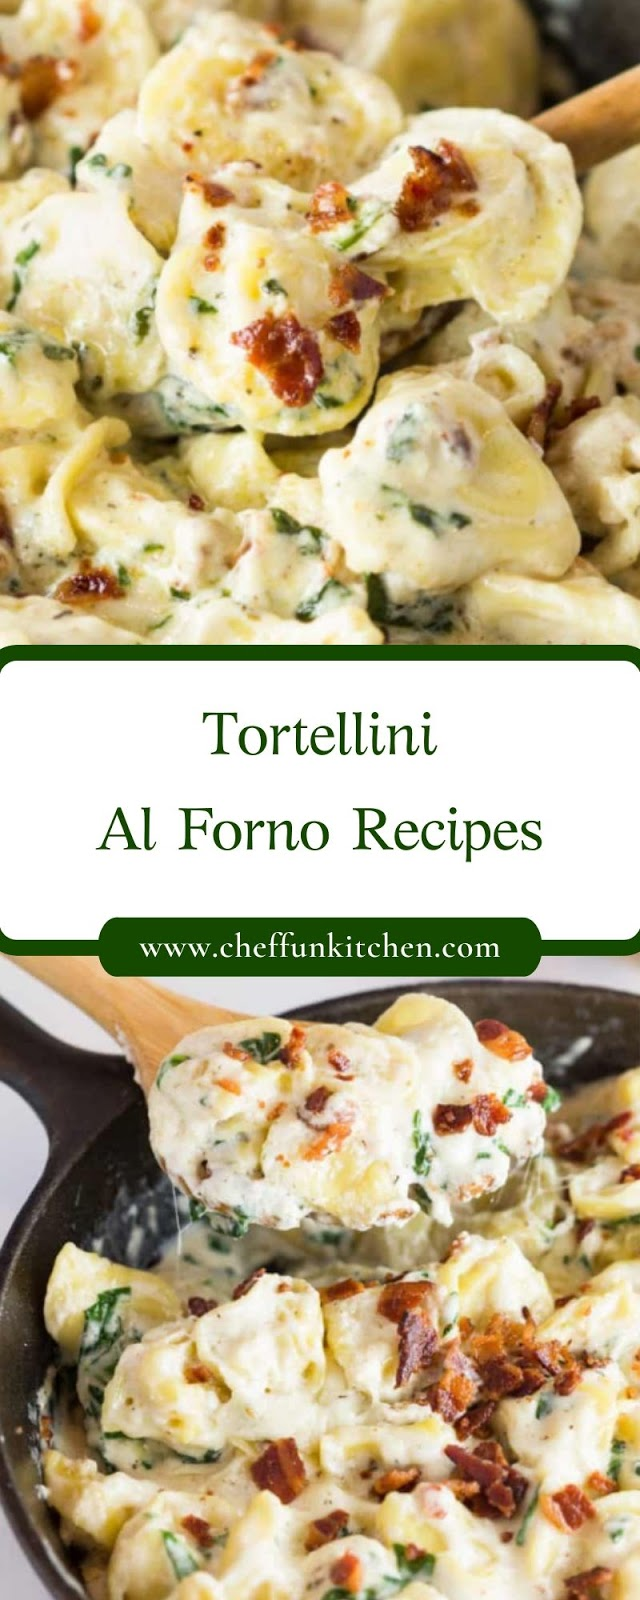 Tortellini Al Forno Recipes